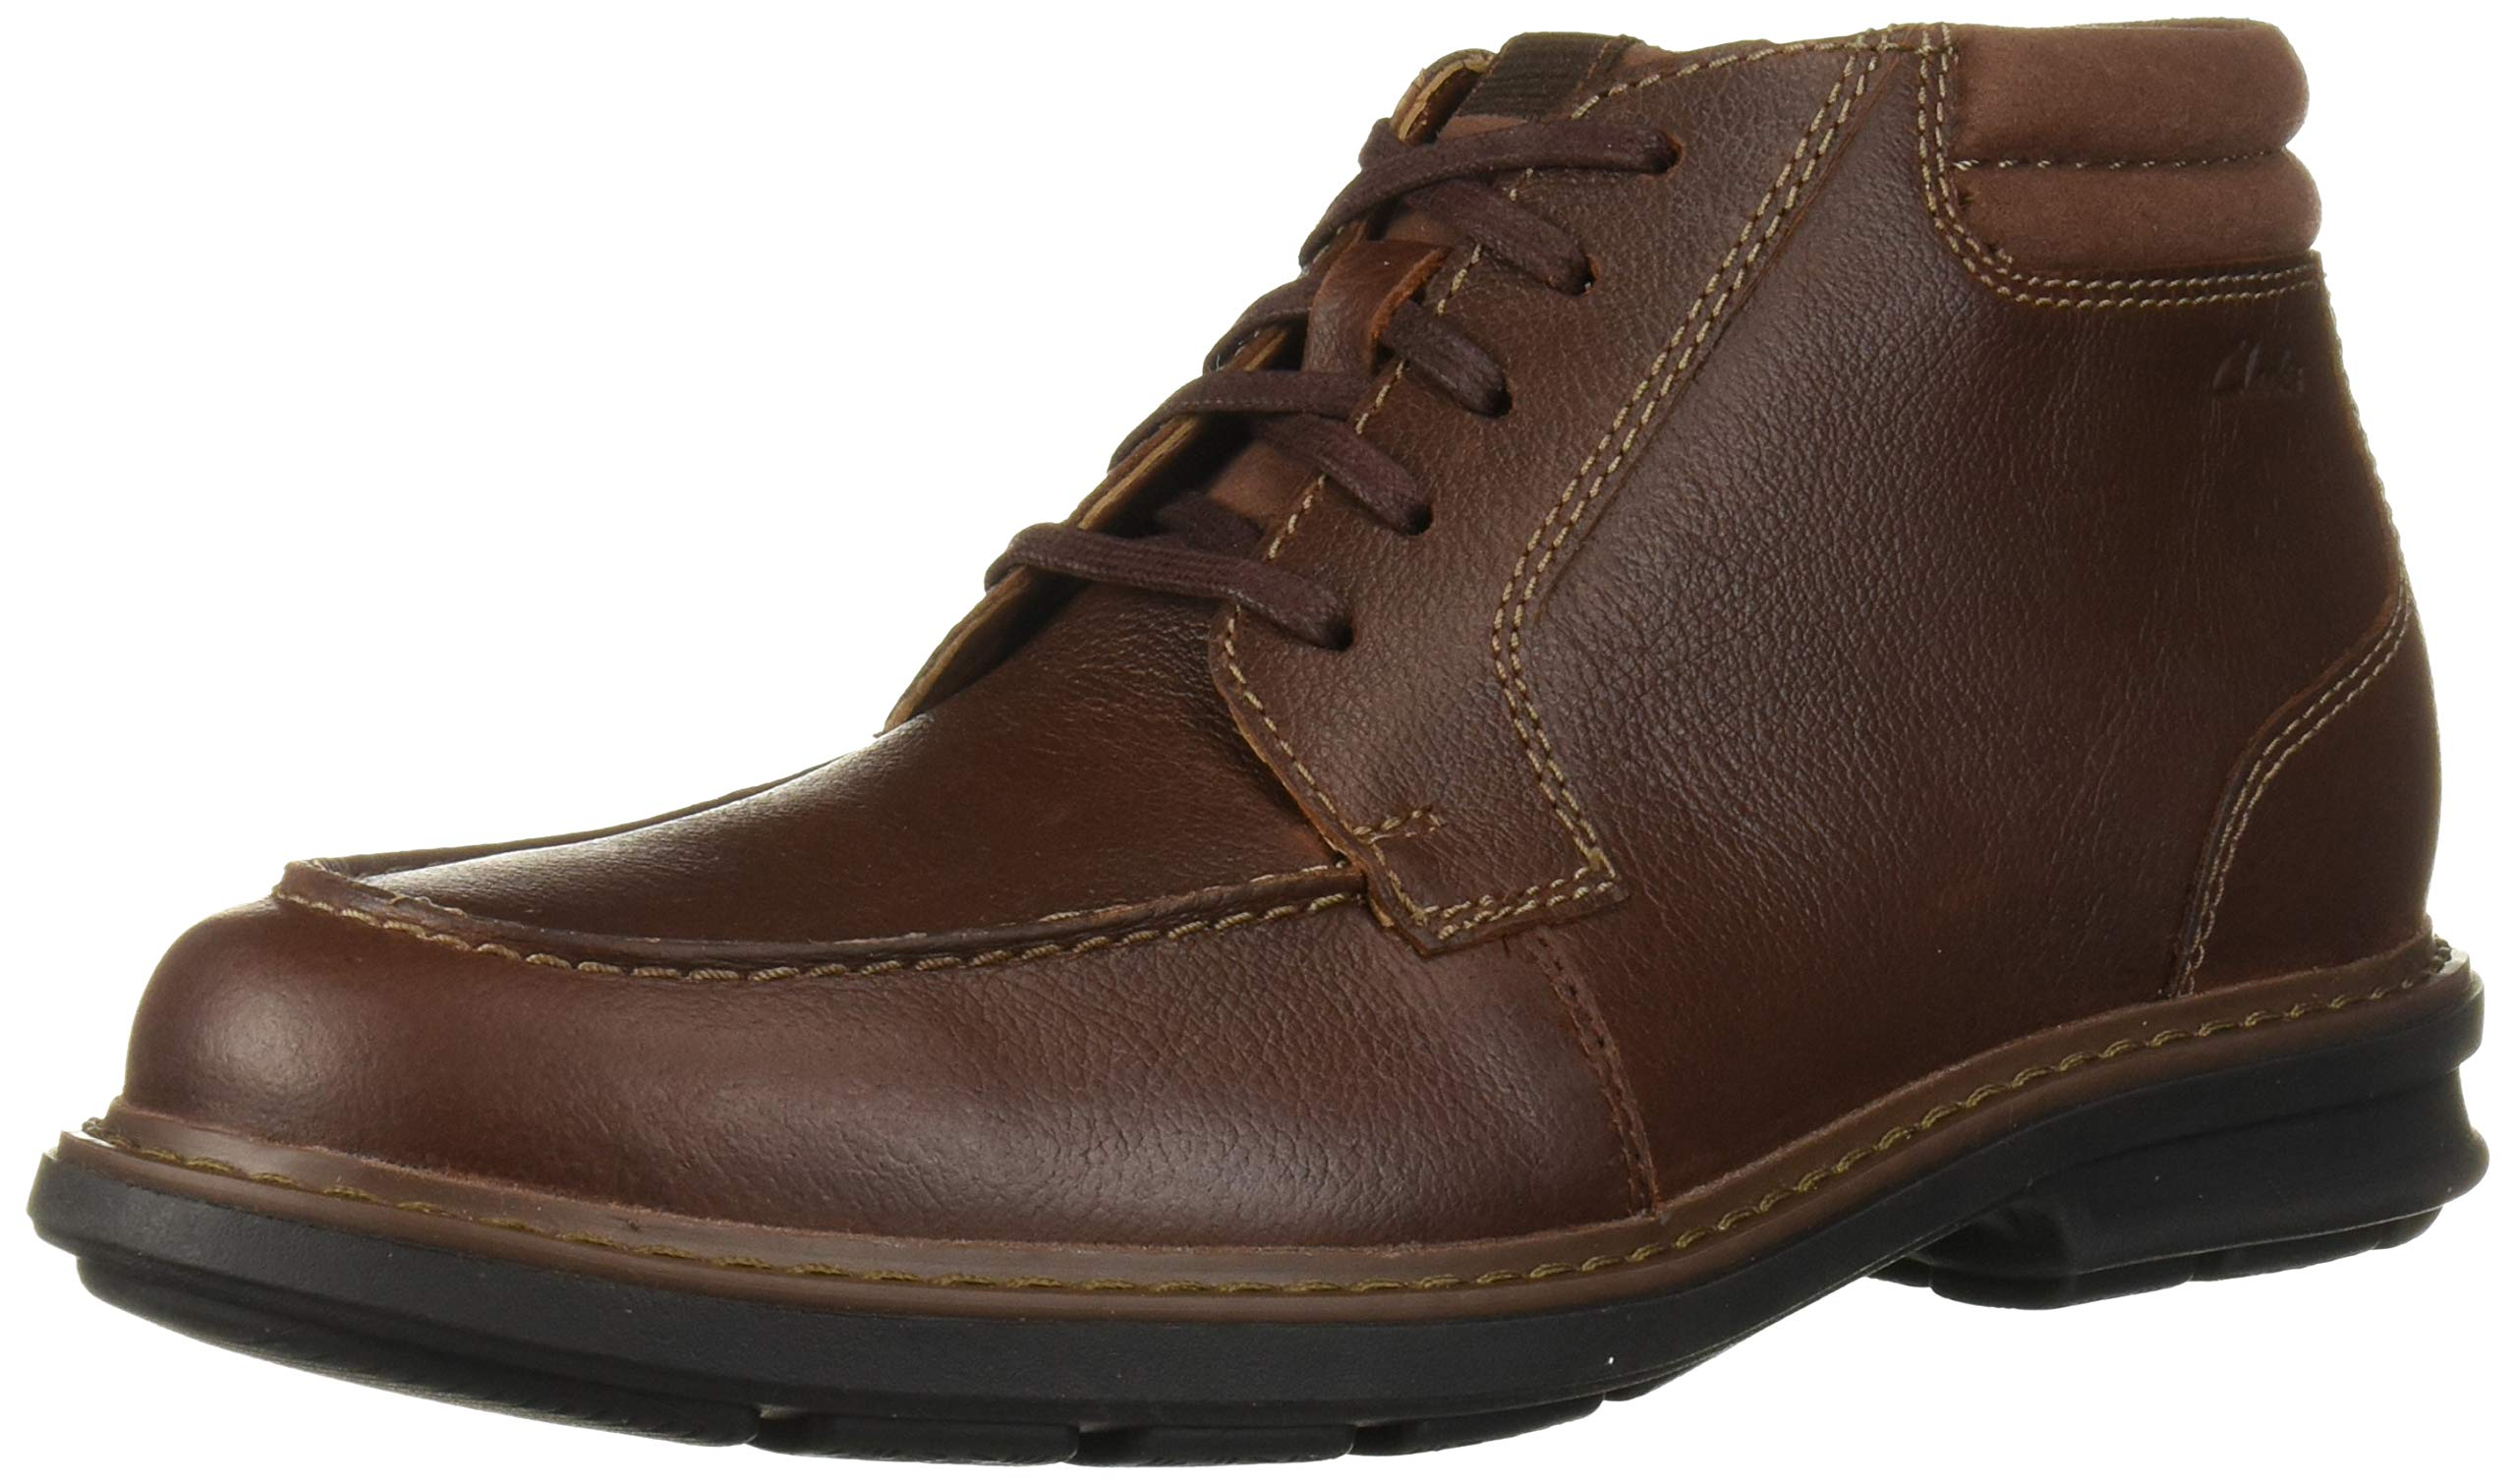 CLARKS Rendell Ankle Mahogany Leather